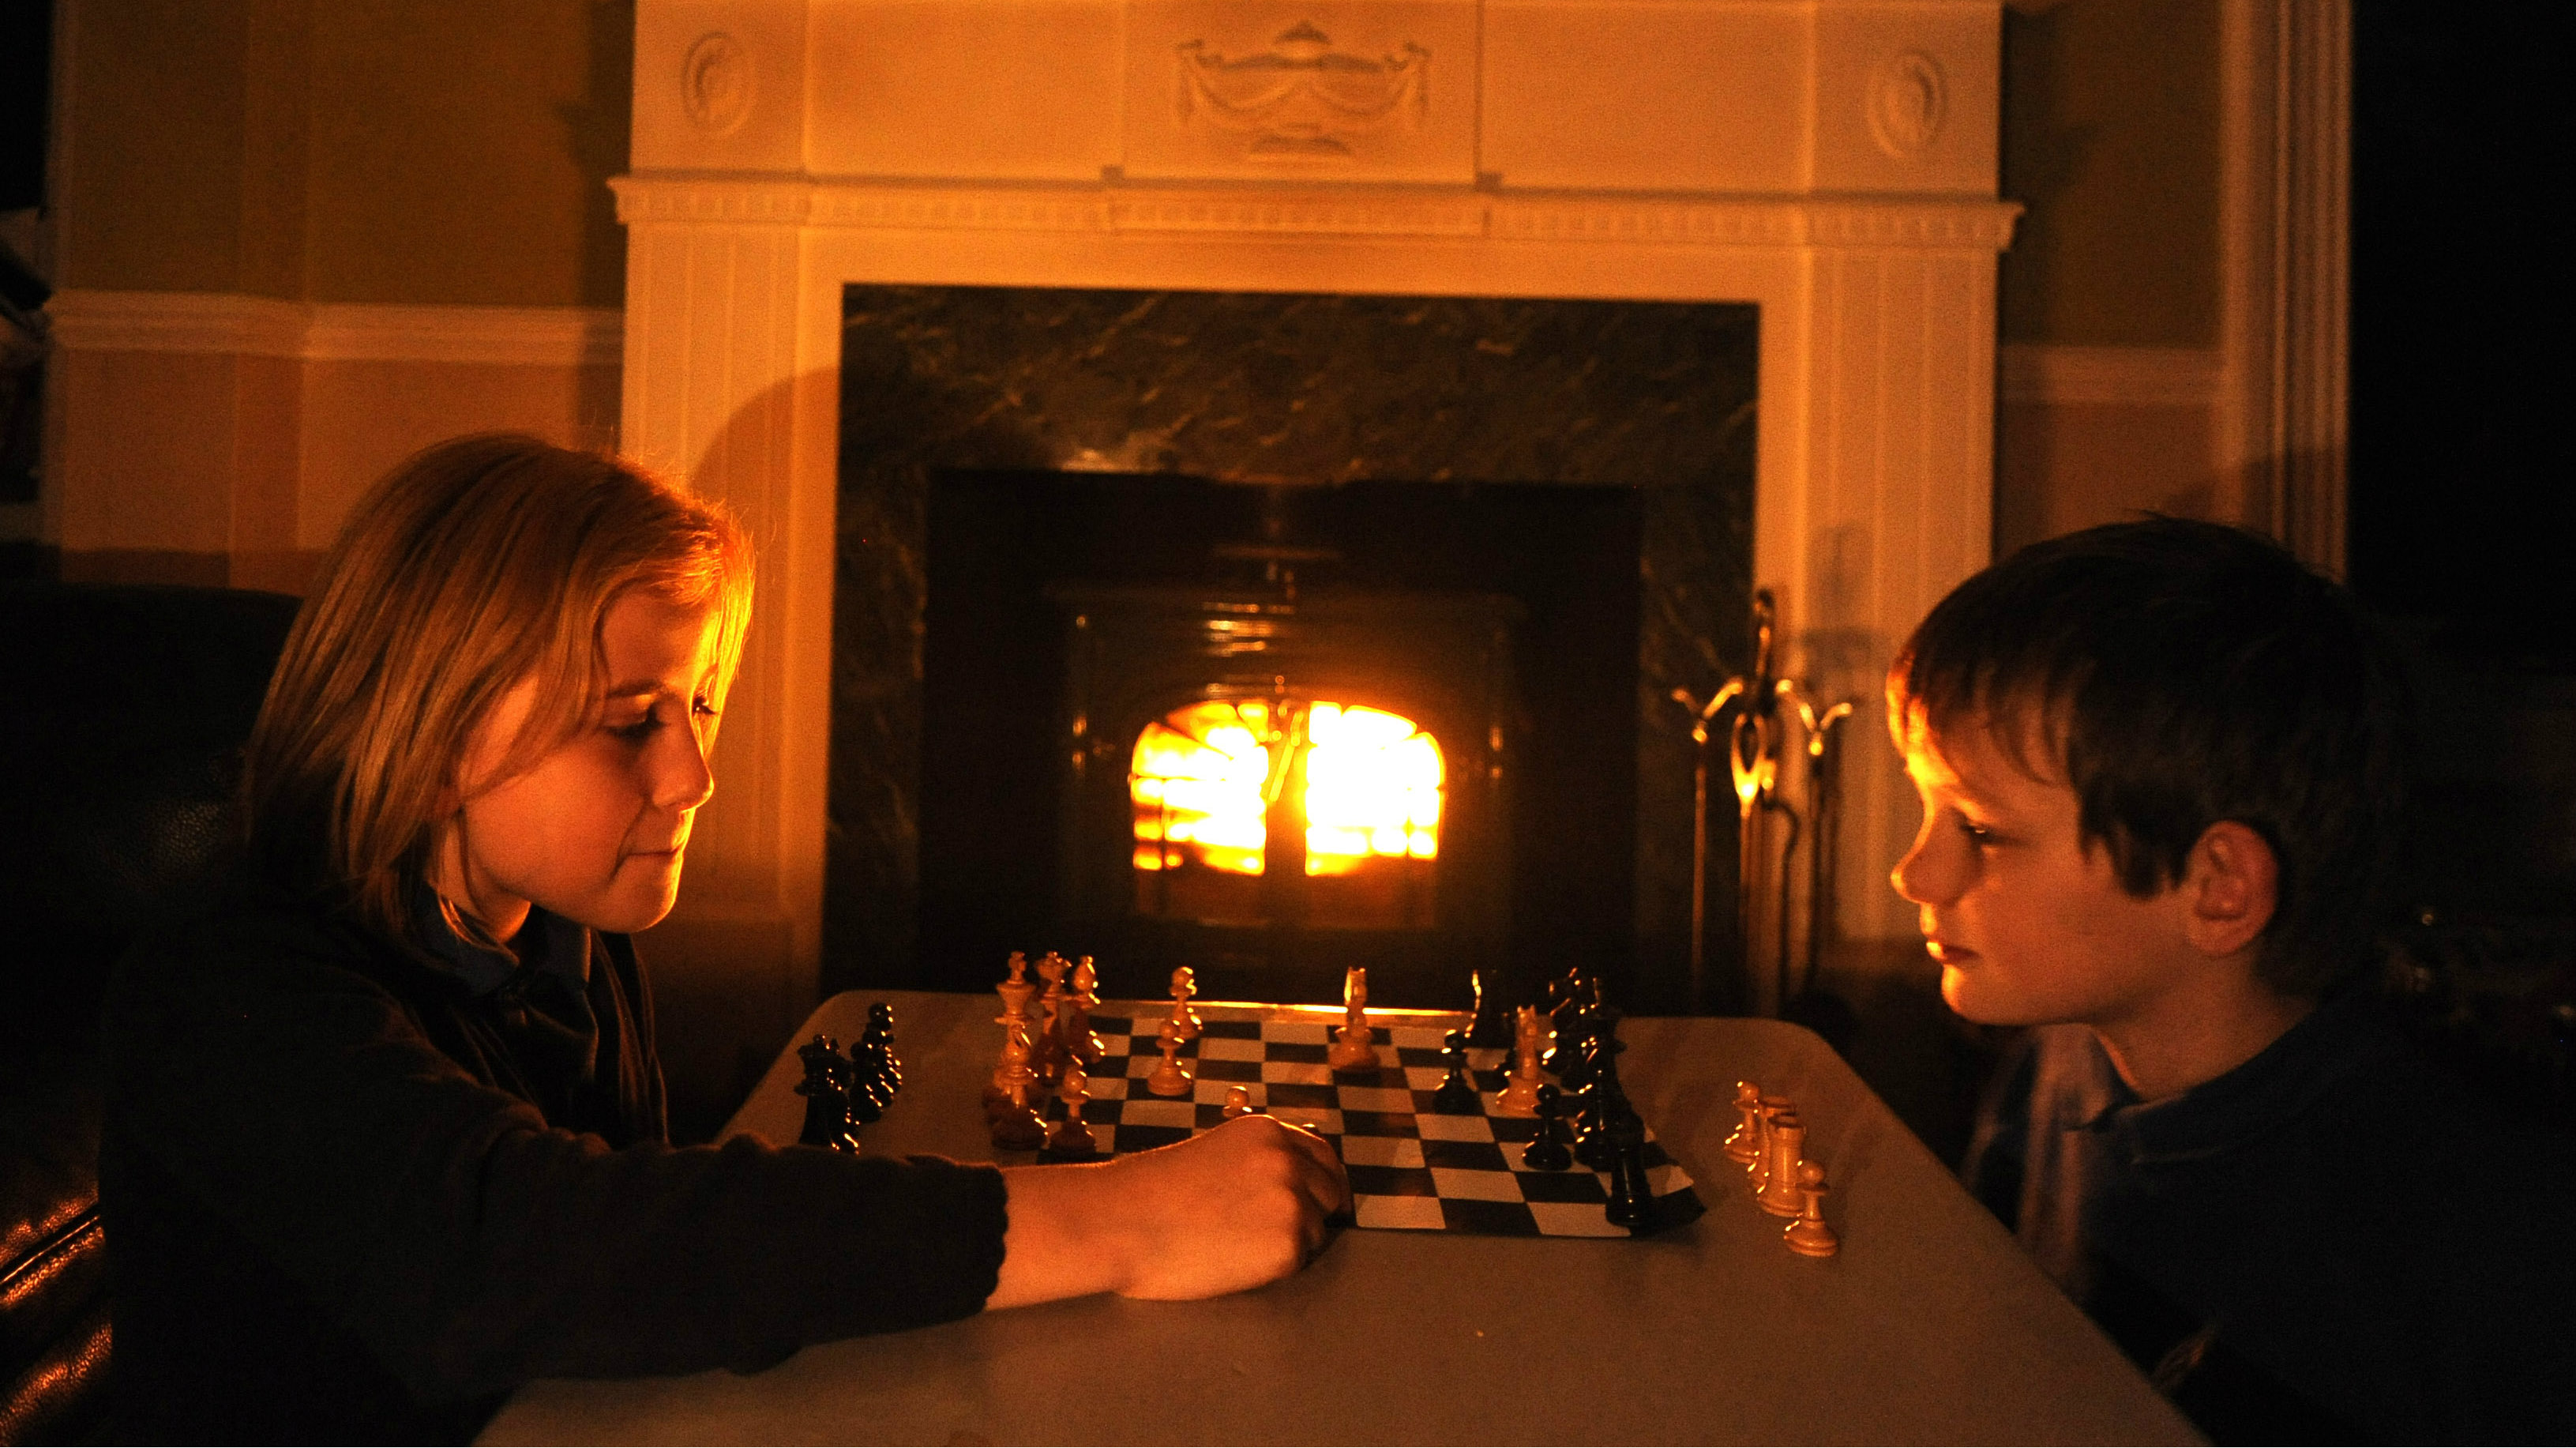 Elsie and Euan play chess by candle light following a power cut in Pitlochry,Scotland